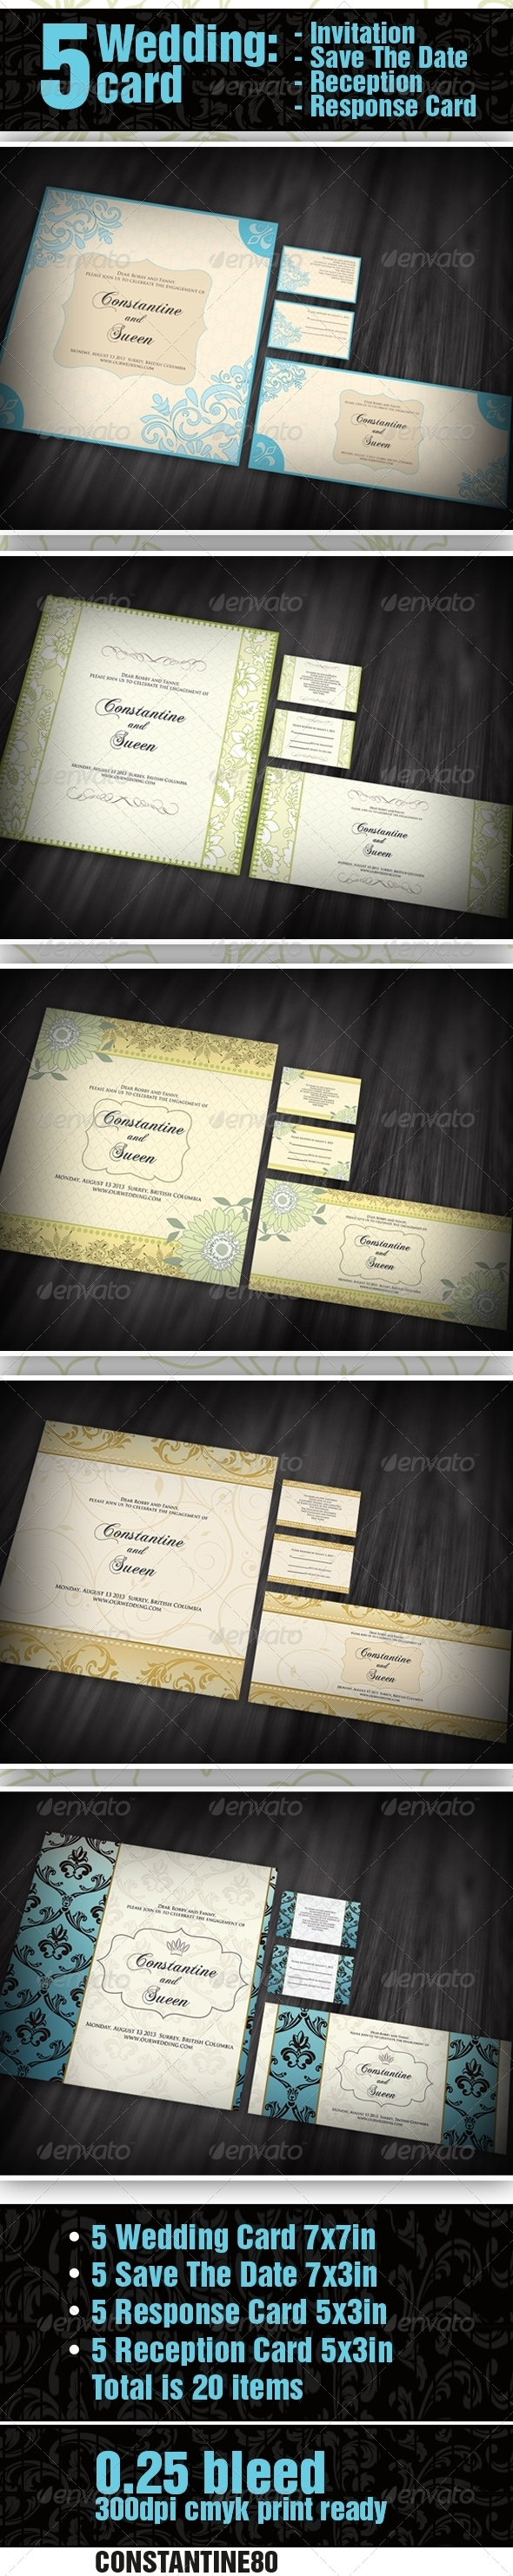 5 items Wedding - Invitation + Save The Date - Weddings Cards & Invites